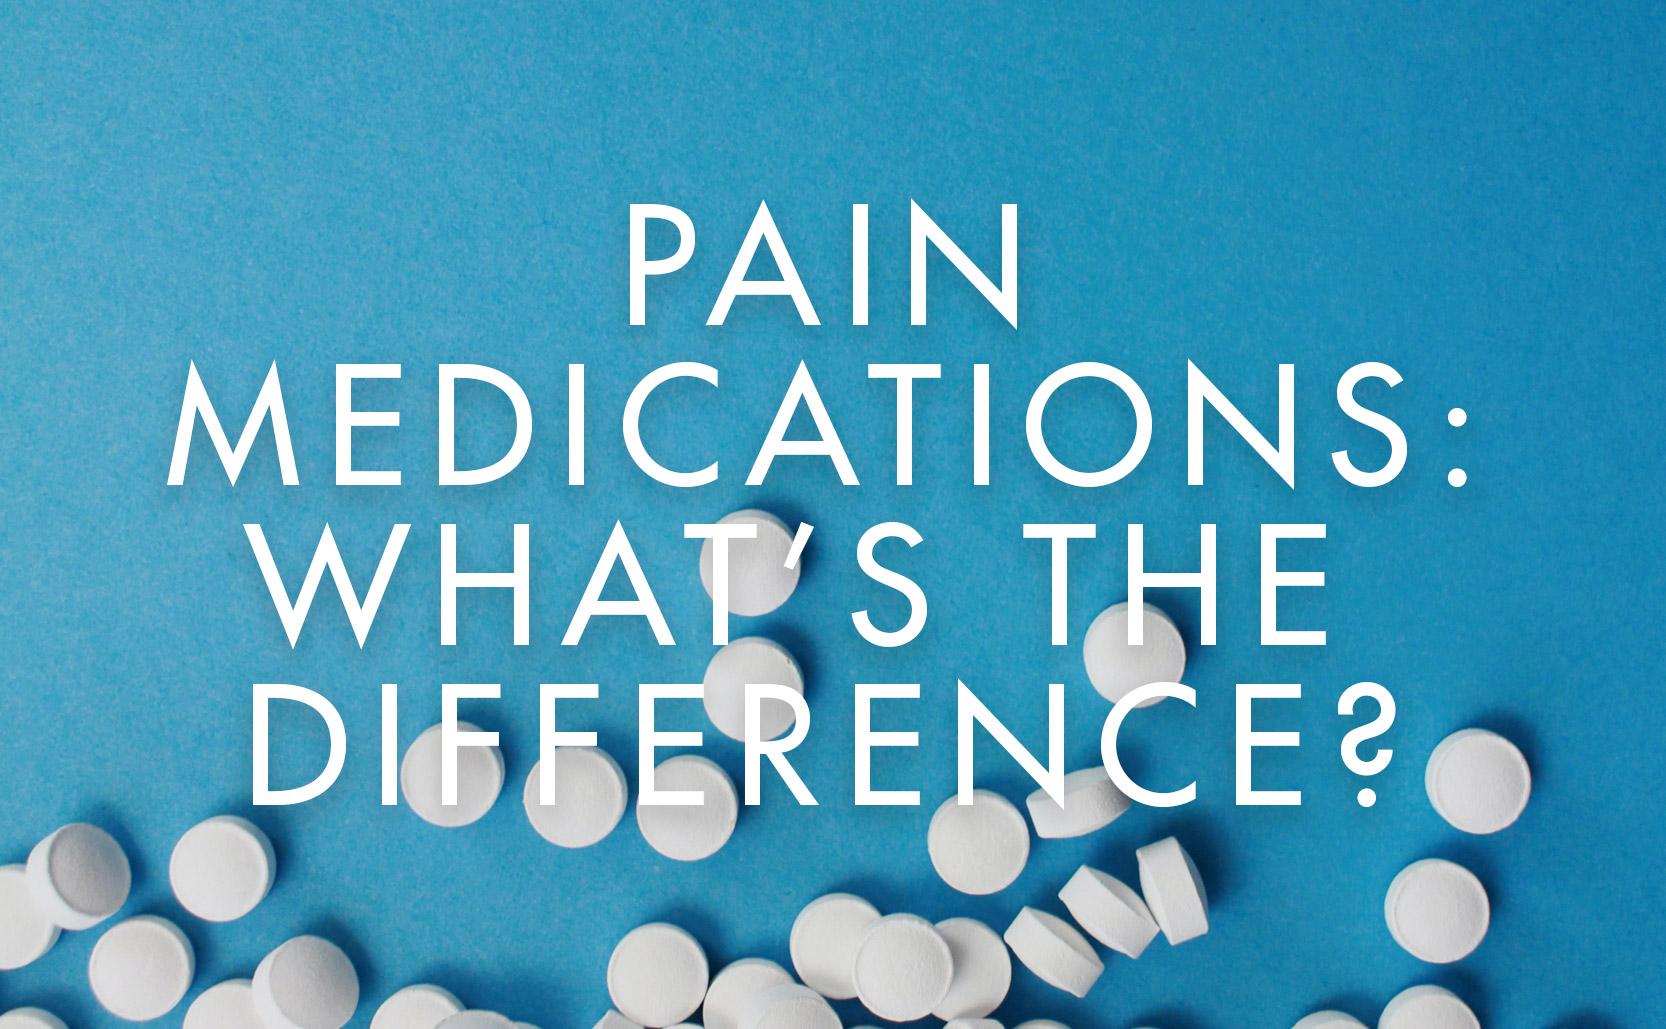 Pain Medications: What's the difference?